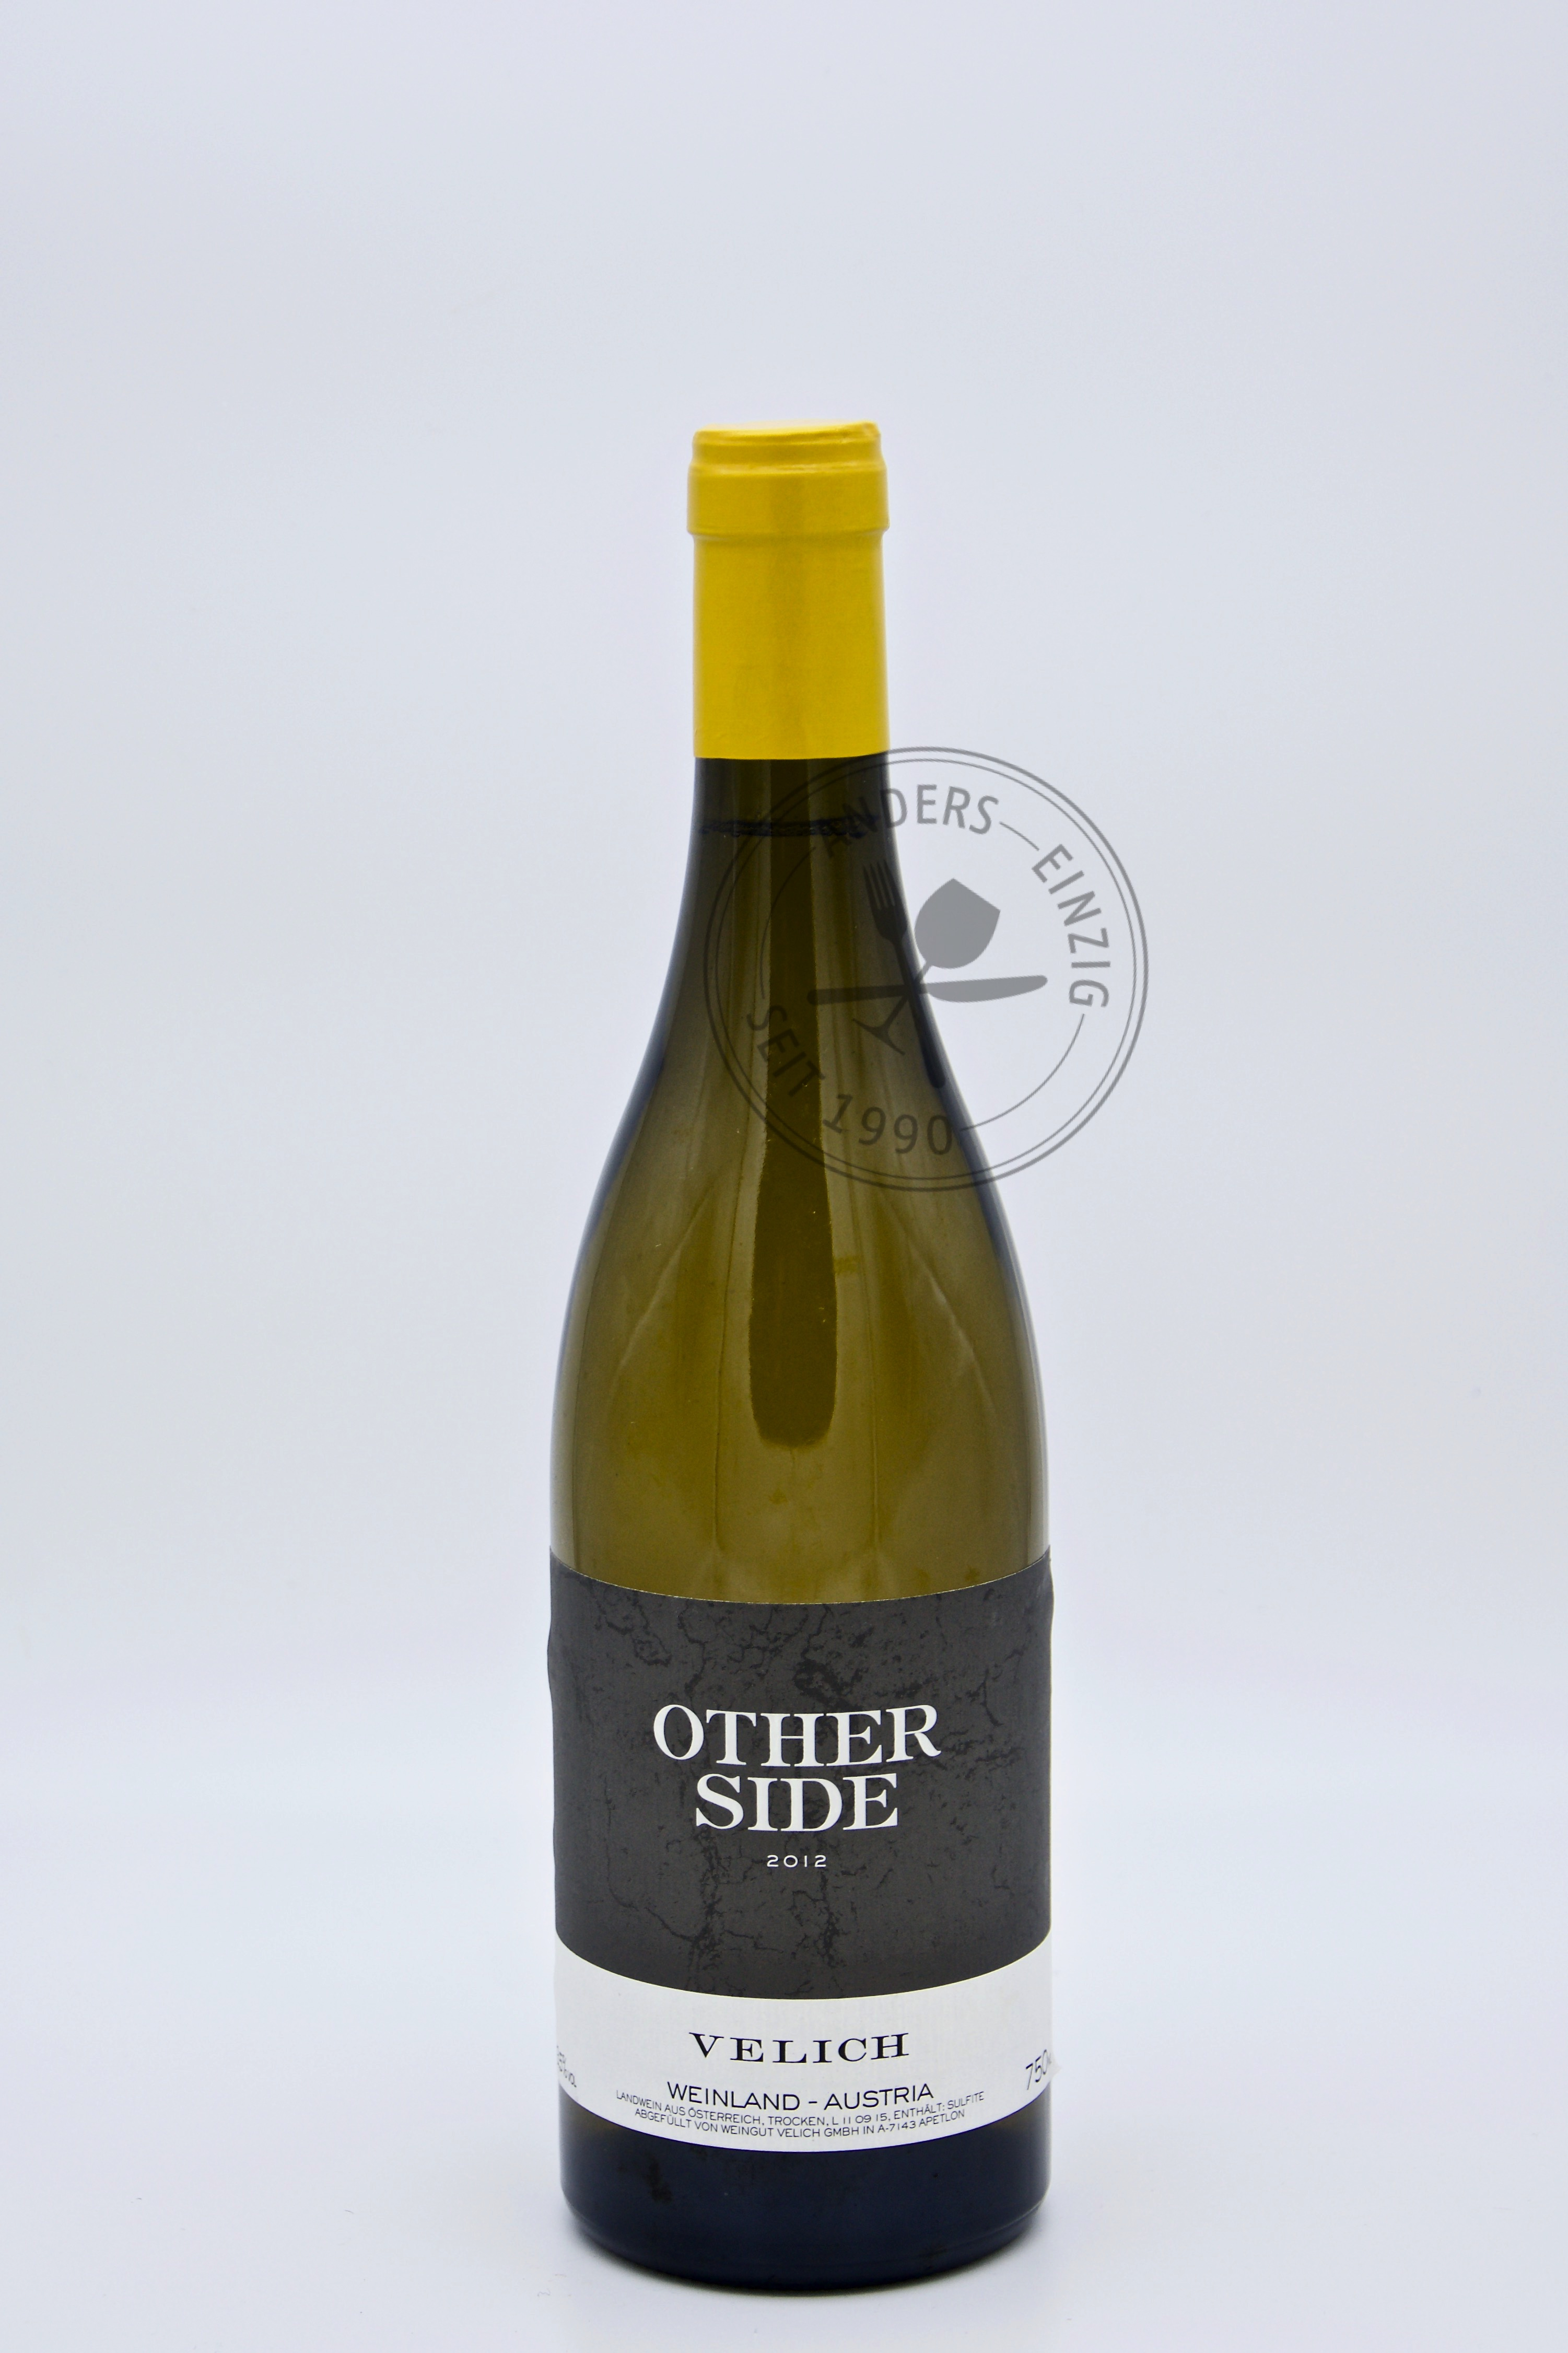 Other Side Chardonnay 2012